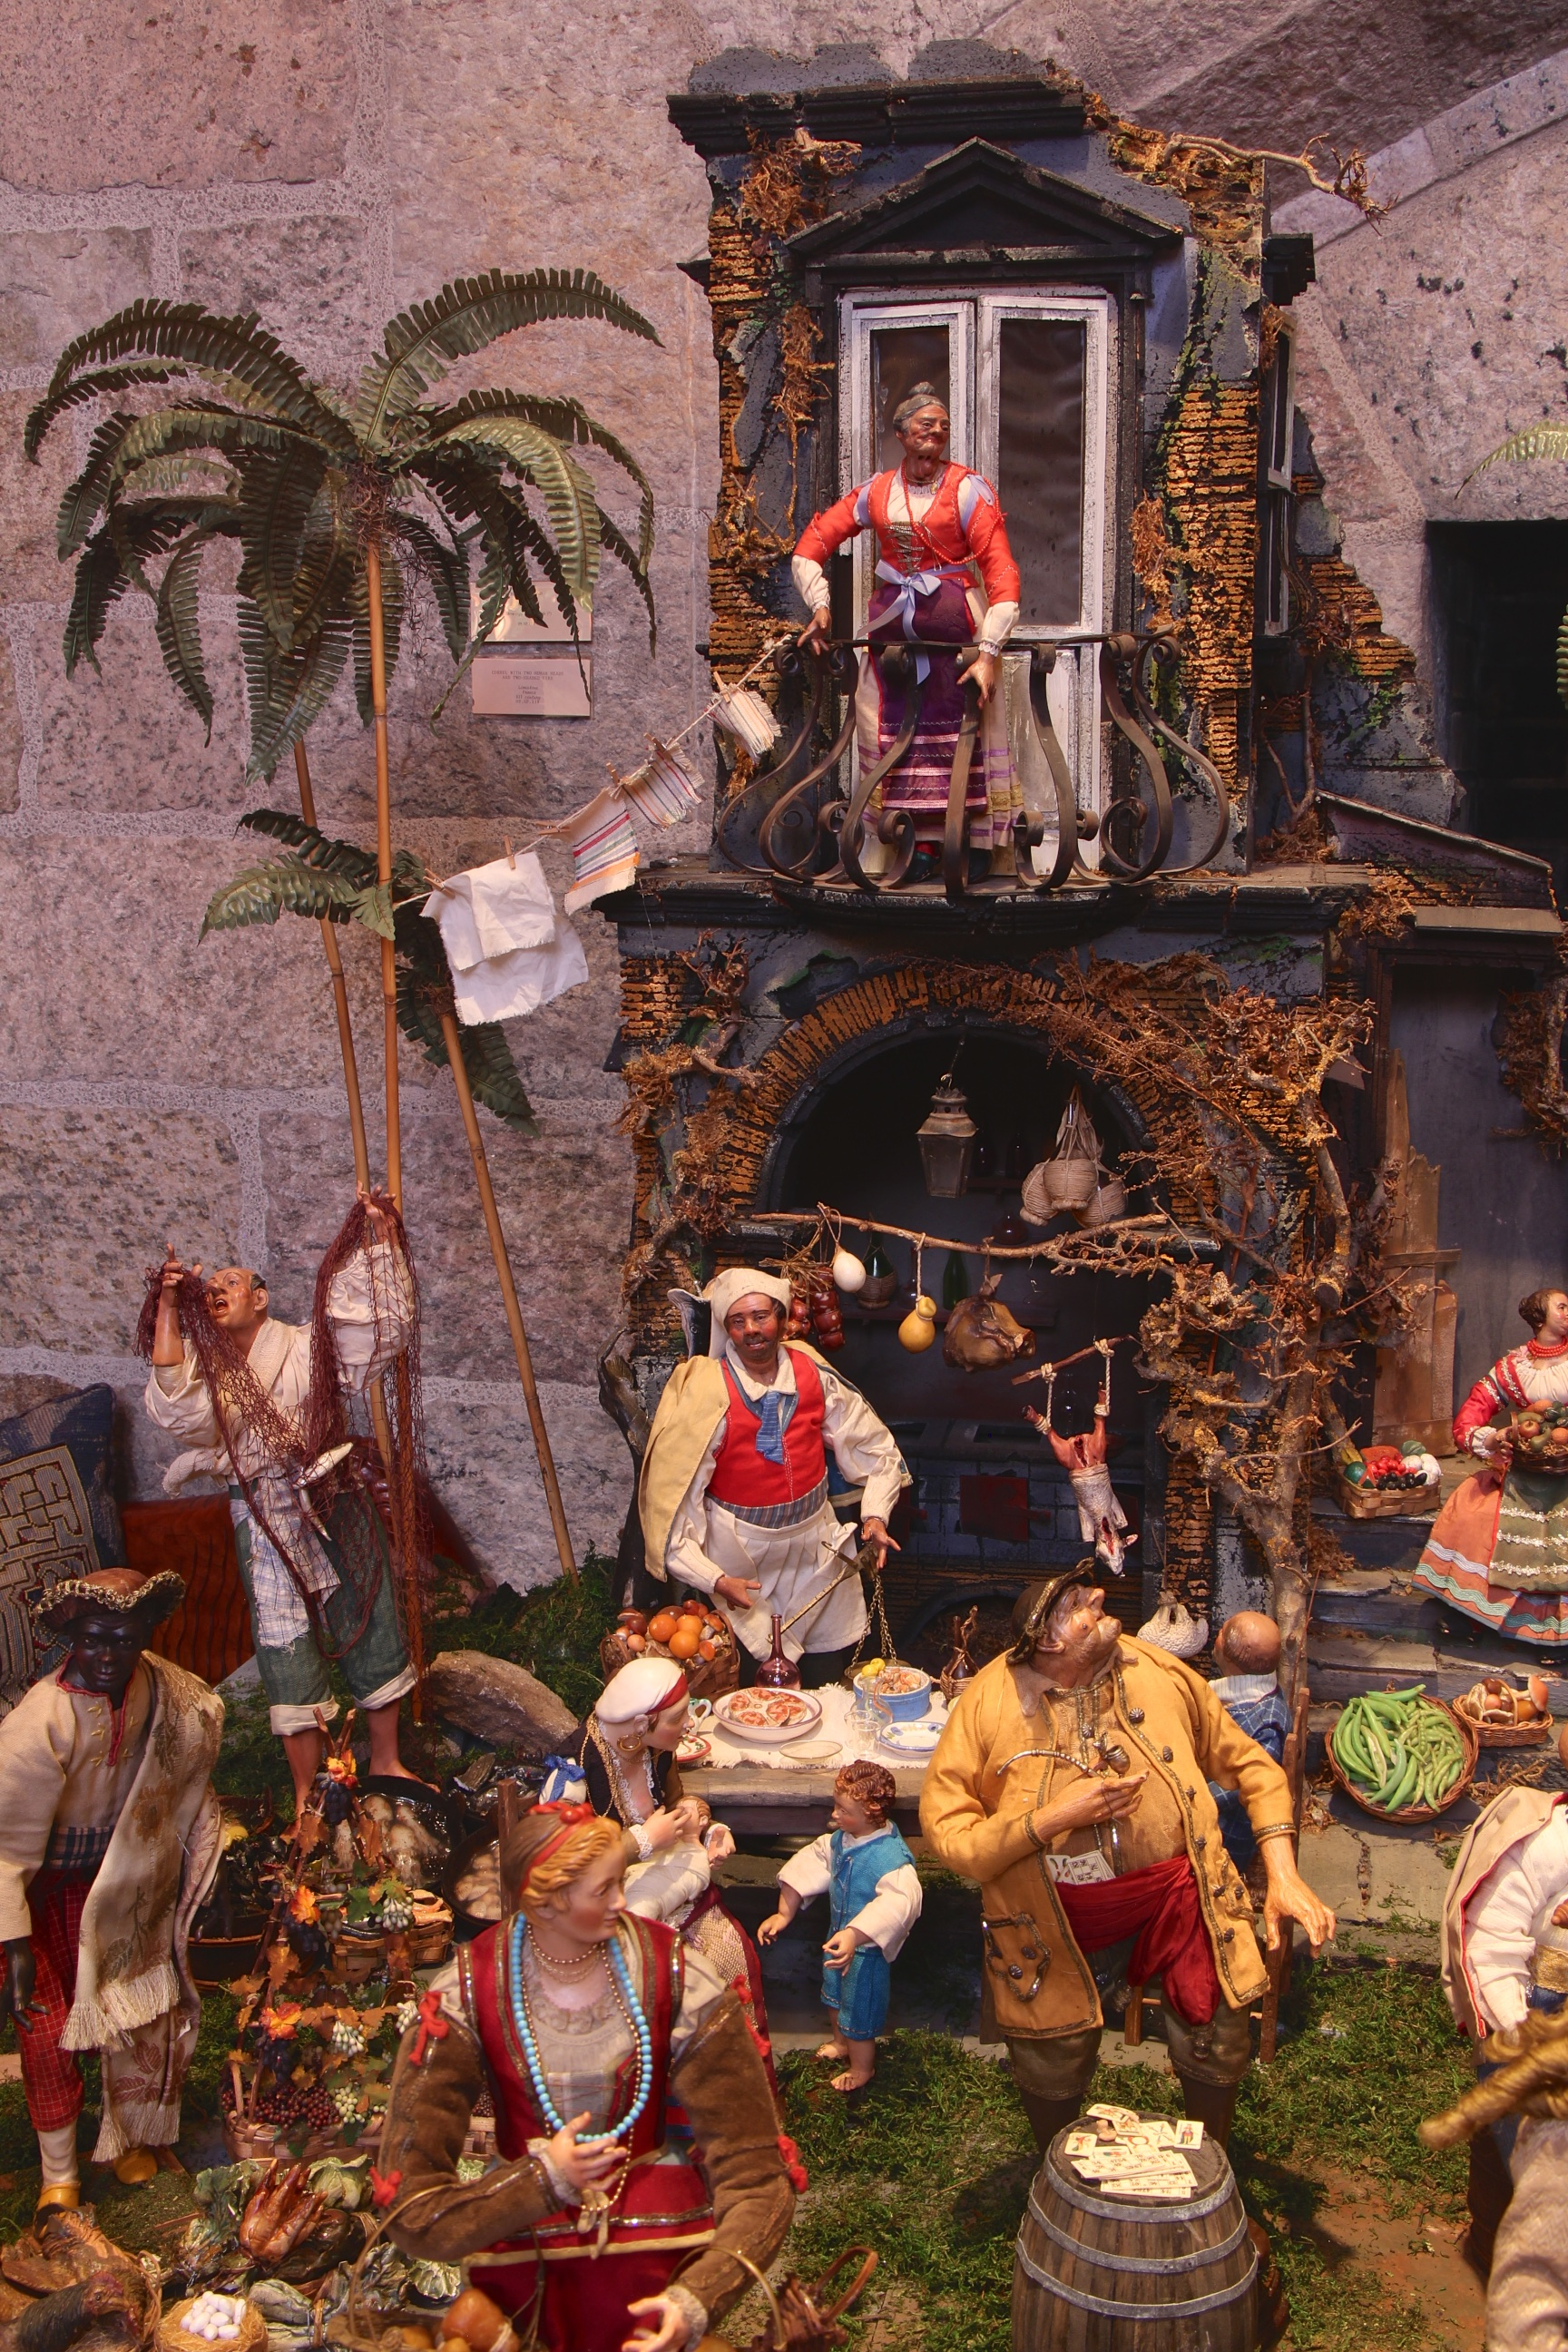 Figure 3: According to the biblical account, Mary and Joseph were turned away from the inn at Bethlehem. The inn scene in this Presepio, which includes several unsavory characters, is located as far as possible from the Holy Family.